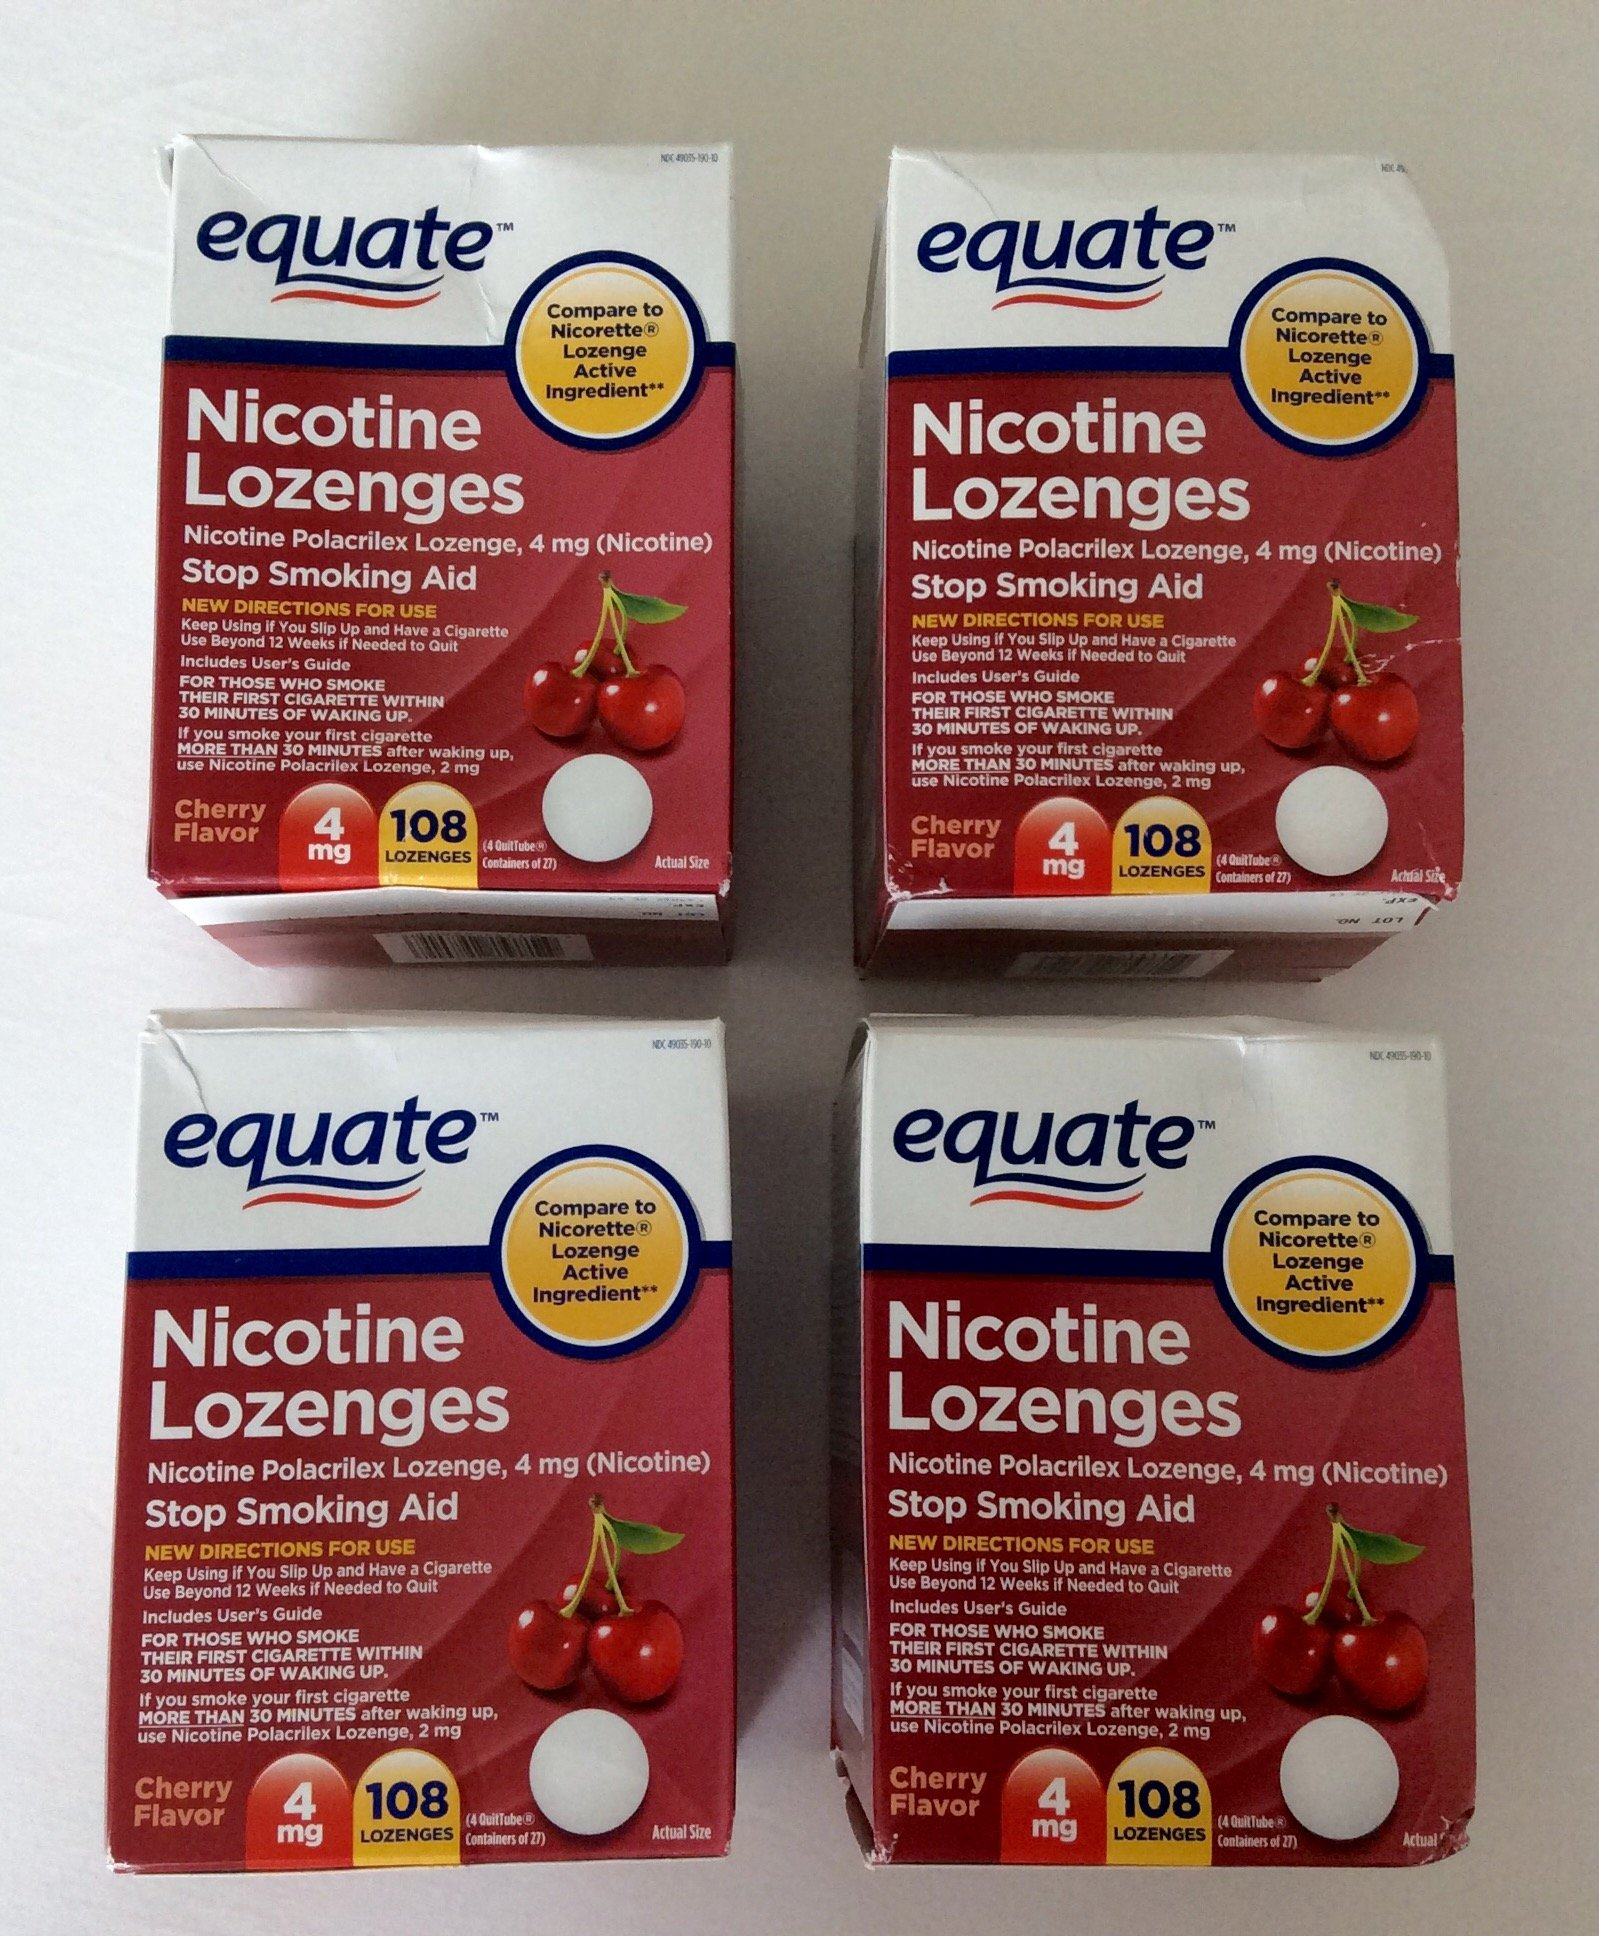 Equate - Nicotine Lozenge 4mg, Cherry Flavor, Lozenges, 108-count, Pack of 4